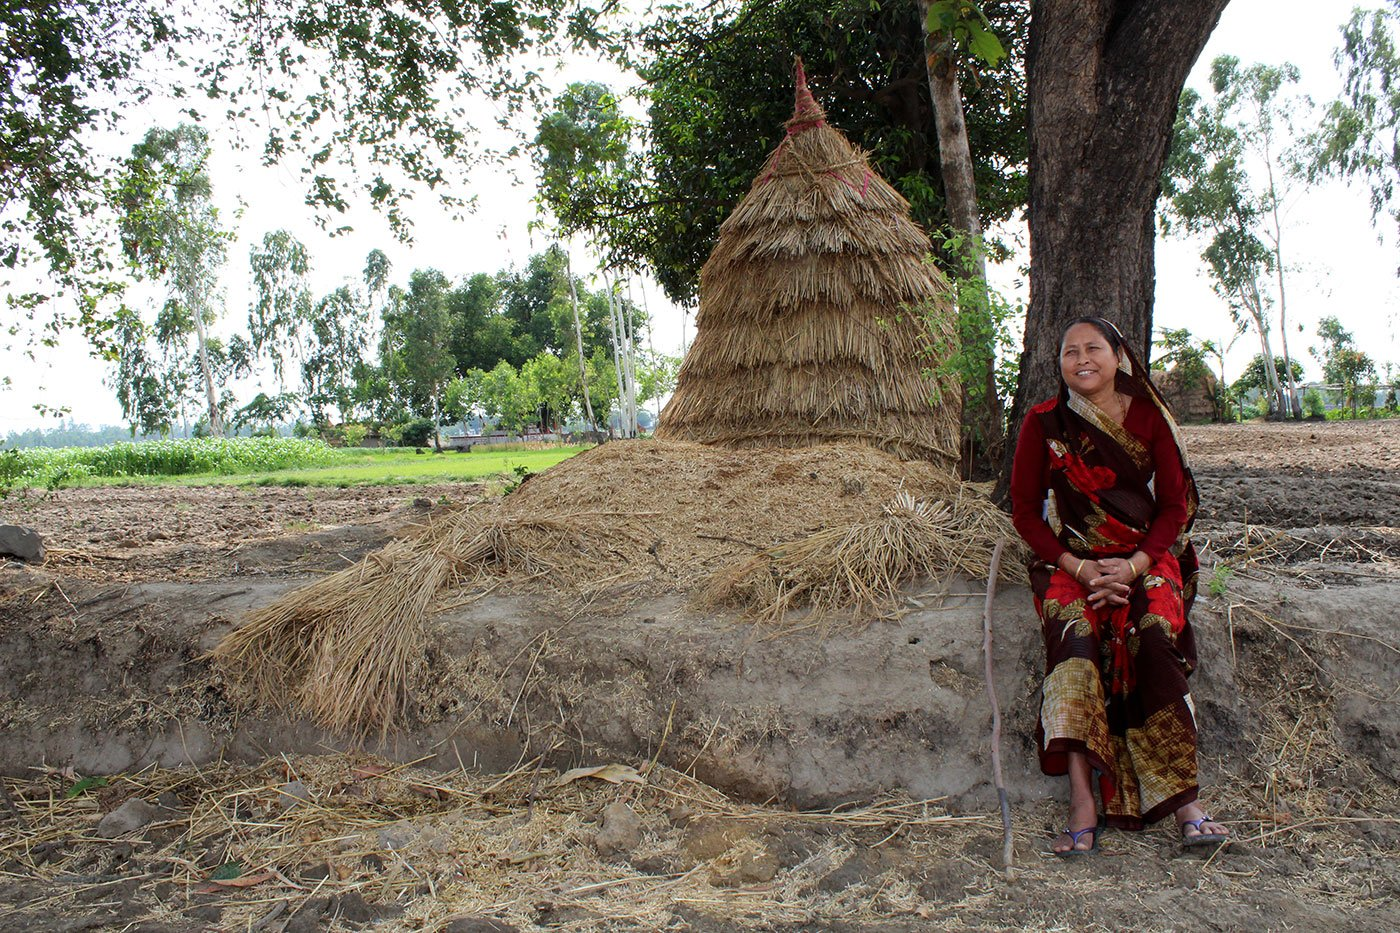 Kamla Devi at her farm in the village of Pindari (Udham Singh Nagar), Uttarakhand